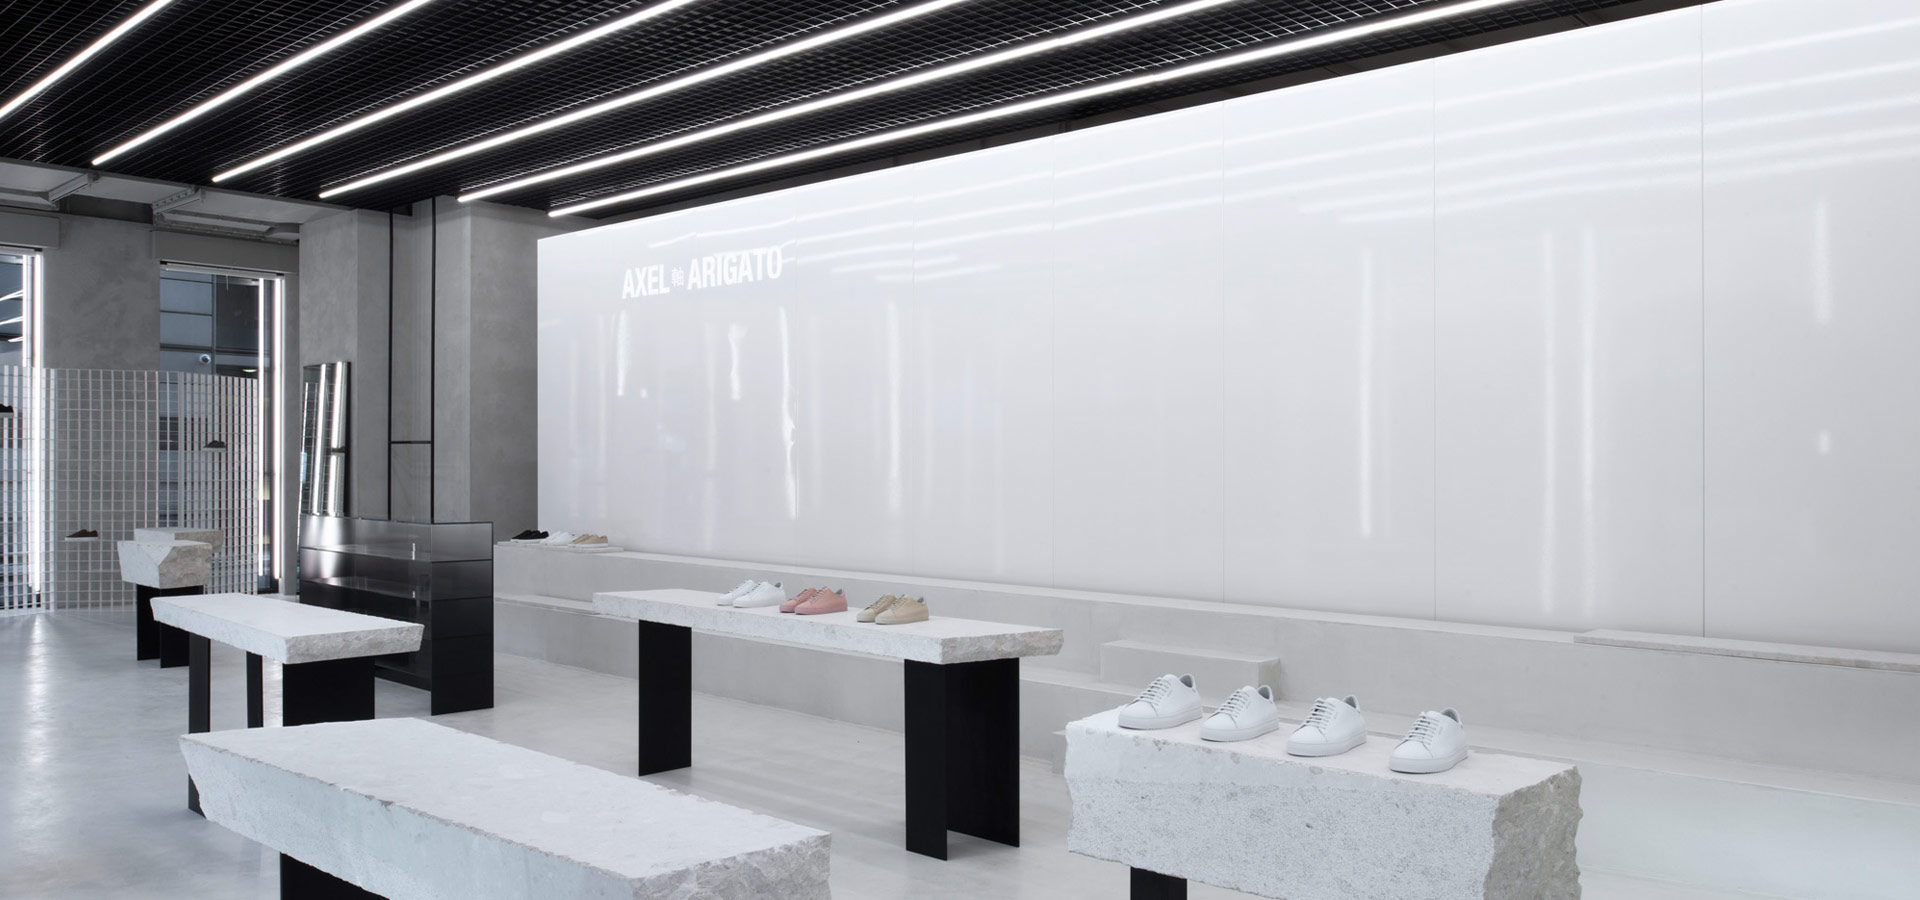 Led Linienle arigato shop lighting with led light line from luxsystem